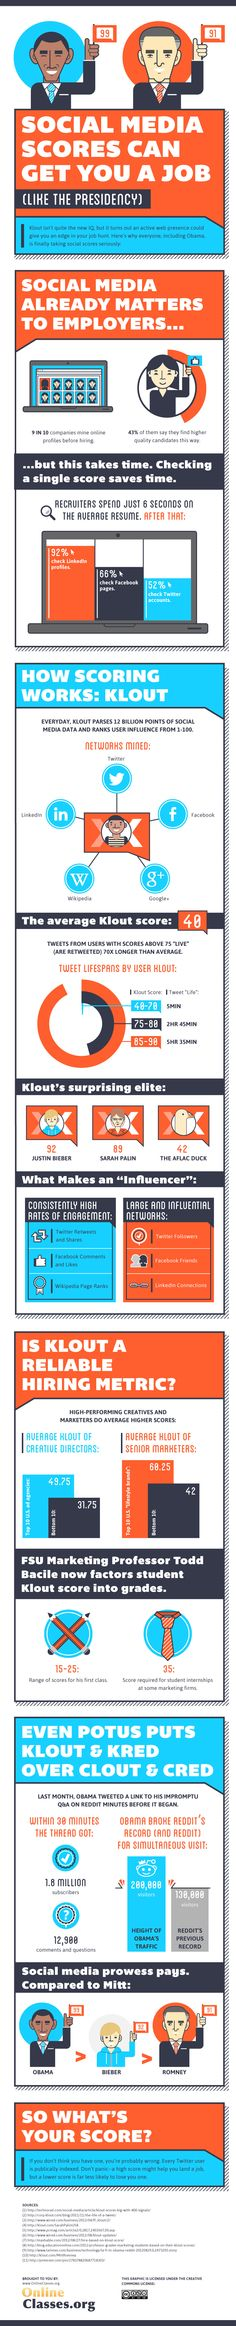 Klout scores and how they impact an election, hiring and just plain influence http://edenchanges.files.wordpress.com/2012/10/socialscoreinfographic.jpg #Klout